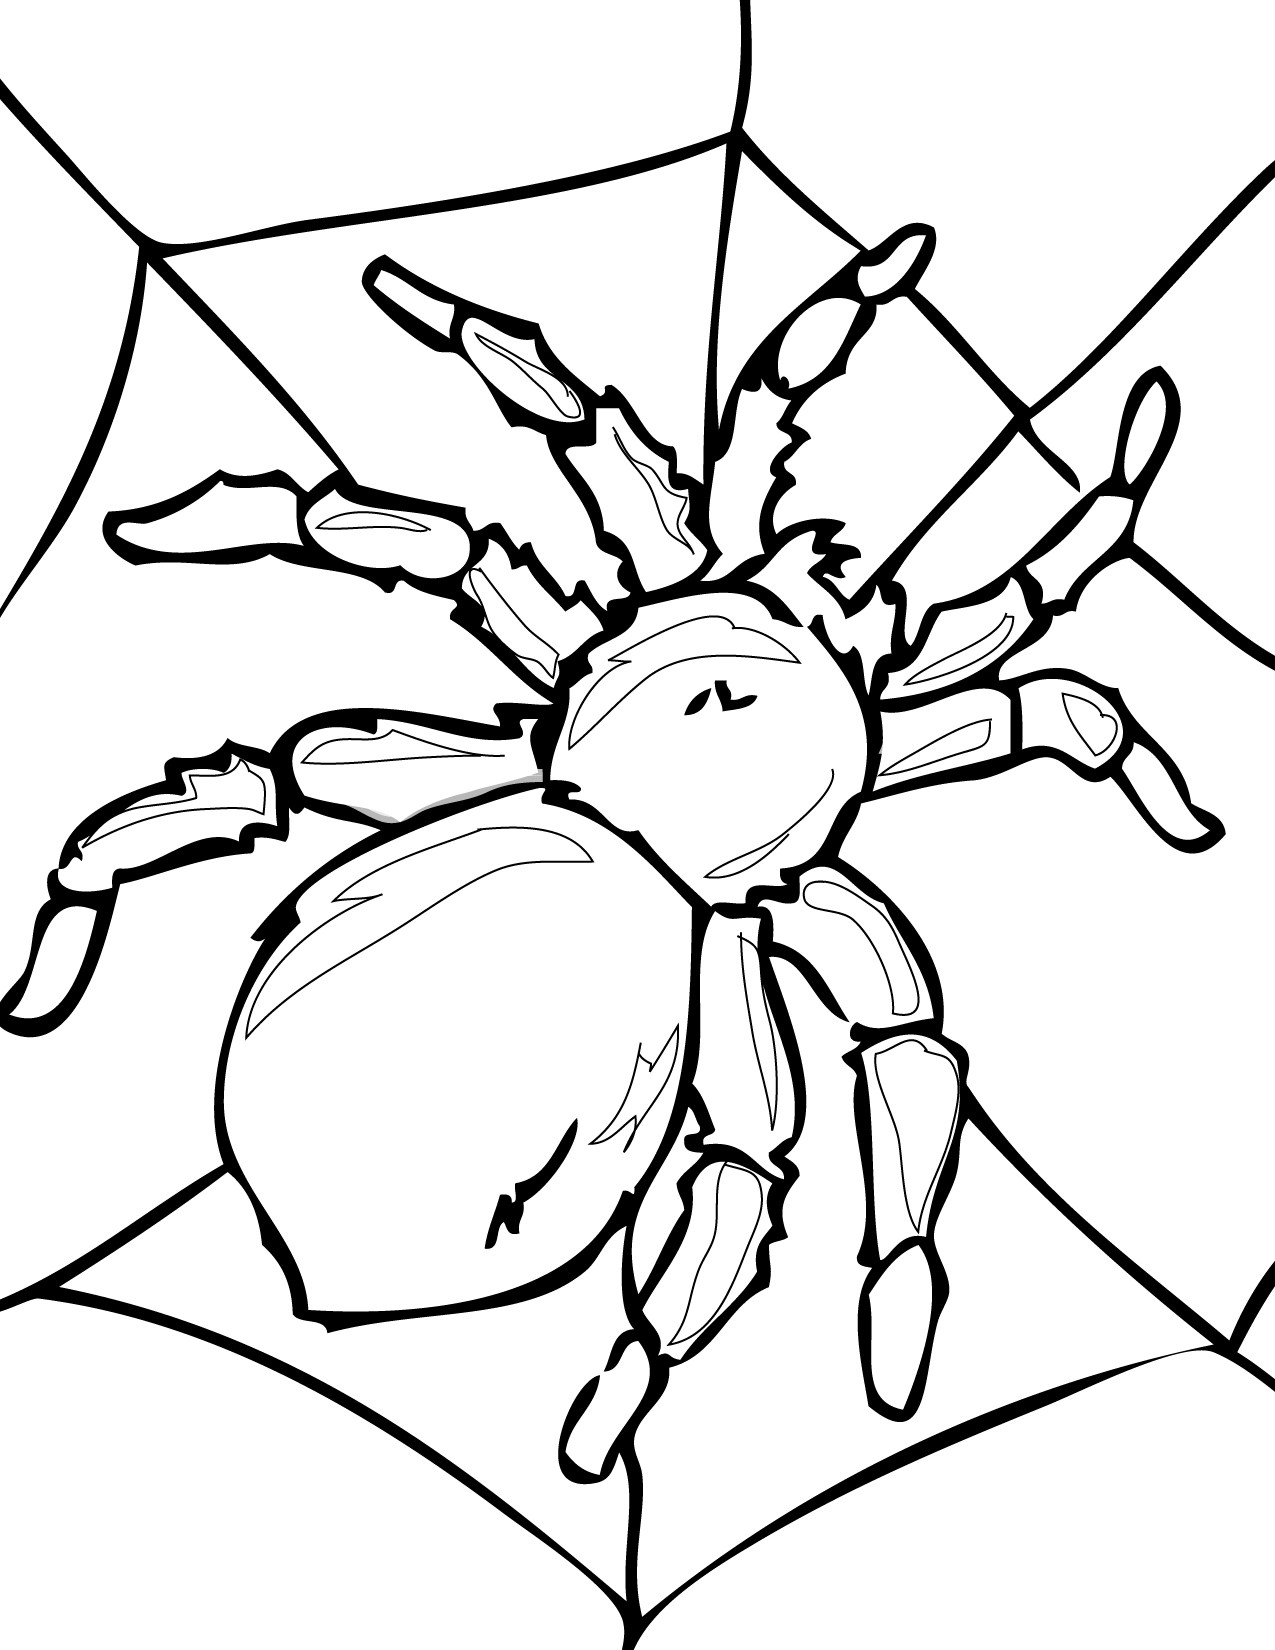 Adult Beauty Spiders Coloring Pages Images best spider coloring pages getcoloringpages com printable images